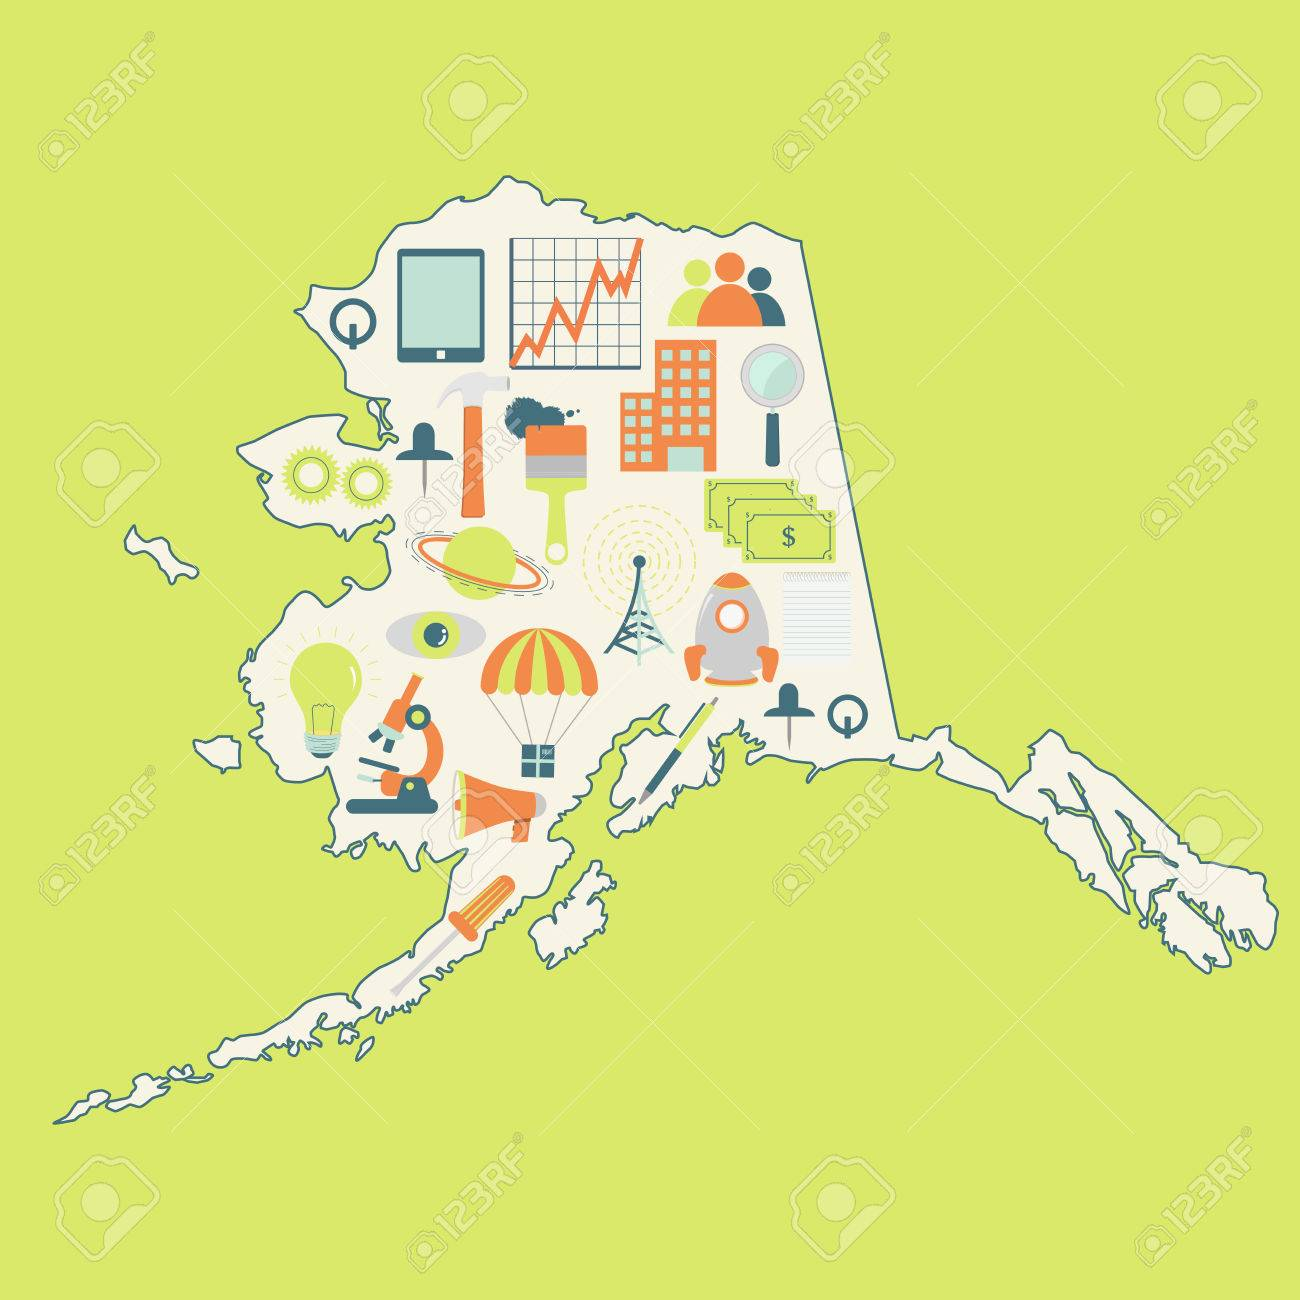 Map Of Alaska With Technology Icons Contour Map Of Alaska With